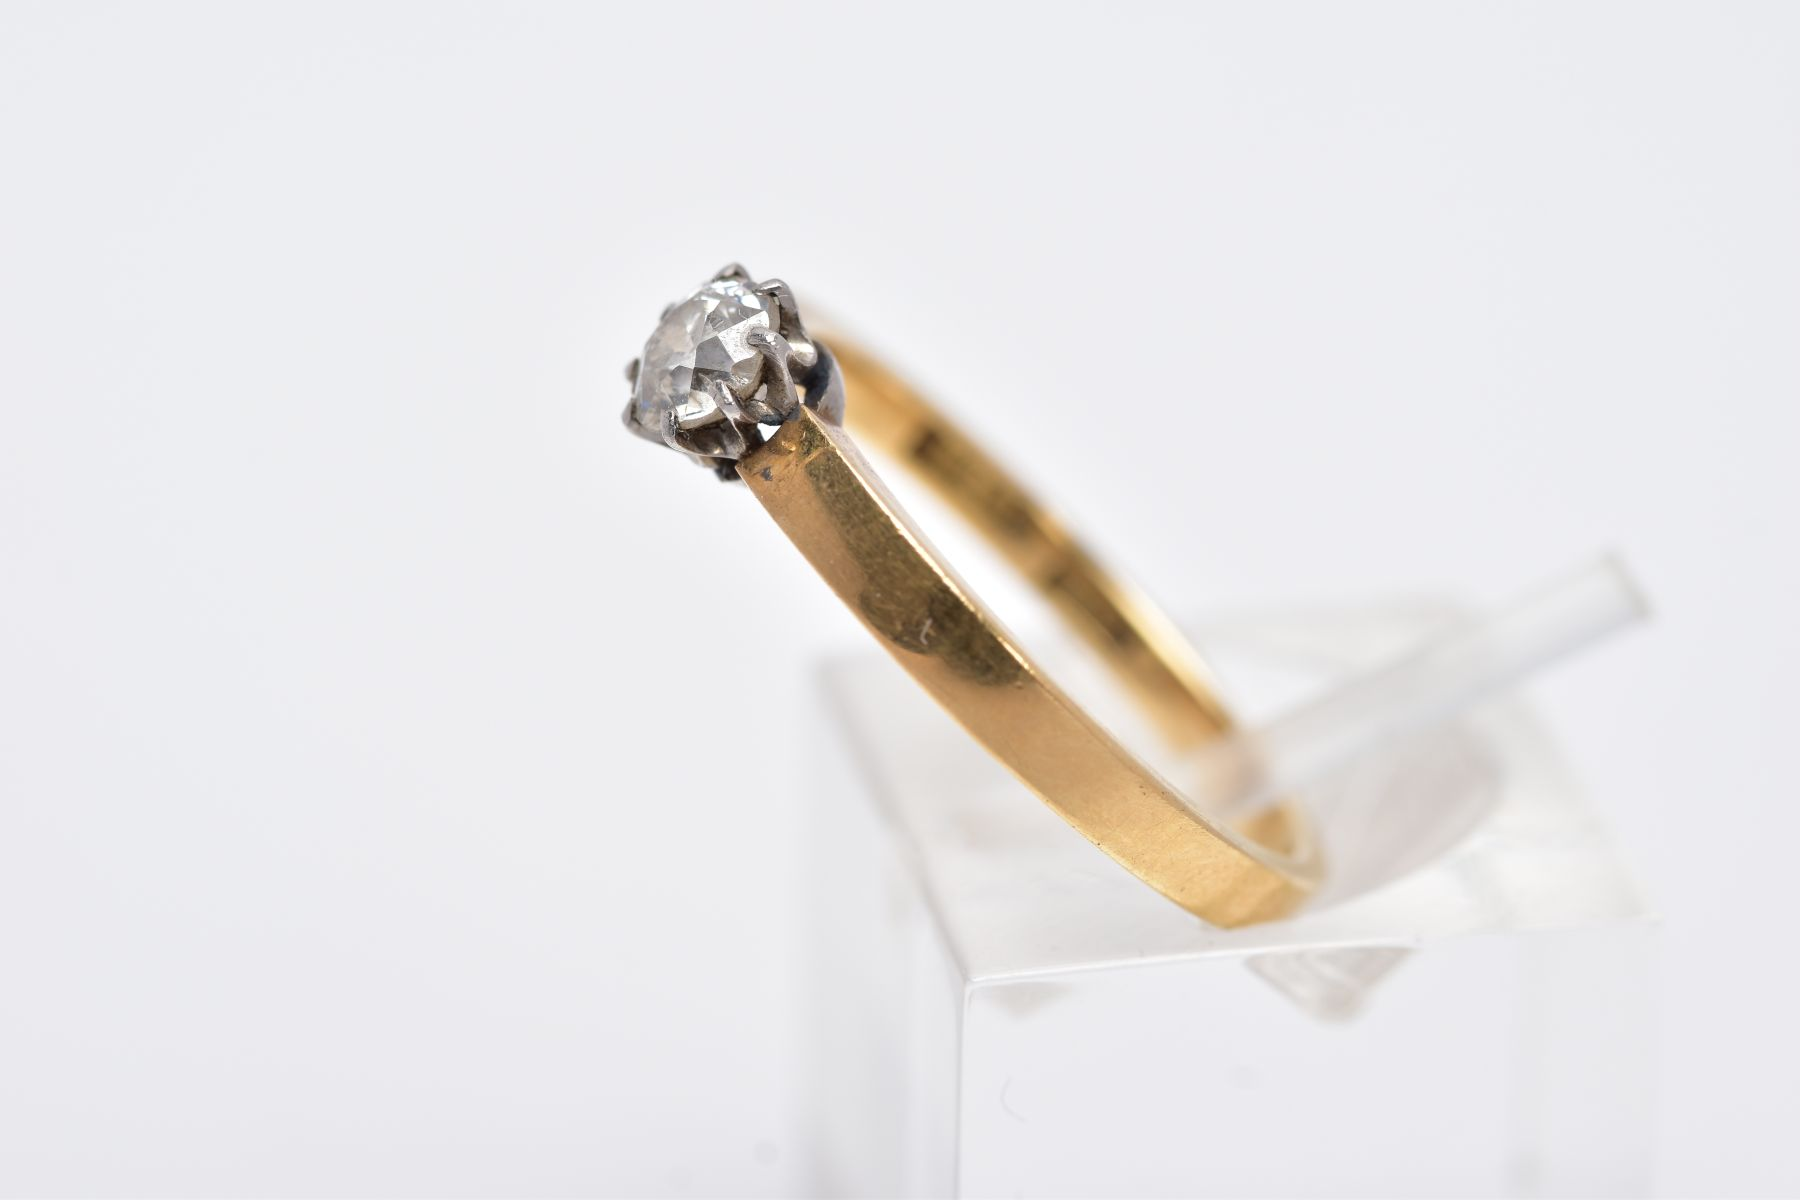 A DIAMOND SINGLE STONE RING, an old cut diamond, estimated weight 0.30ct, colour assessed as H-I, - Image 2 of 3